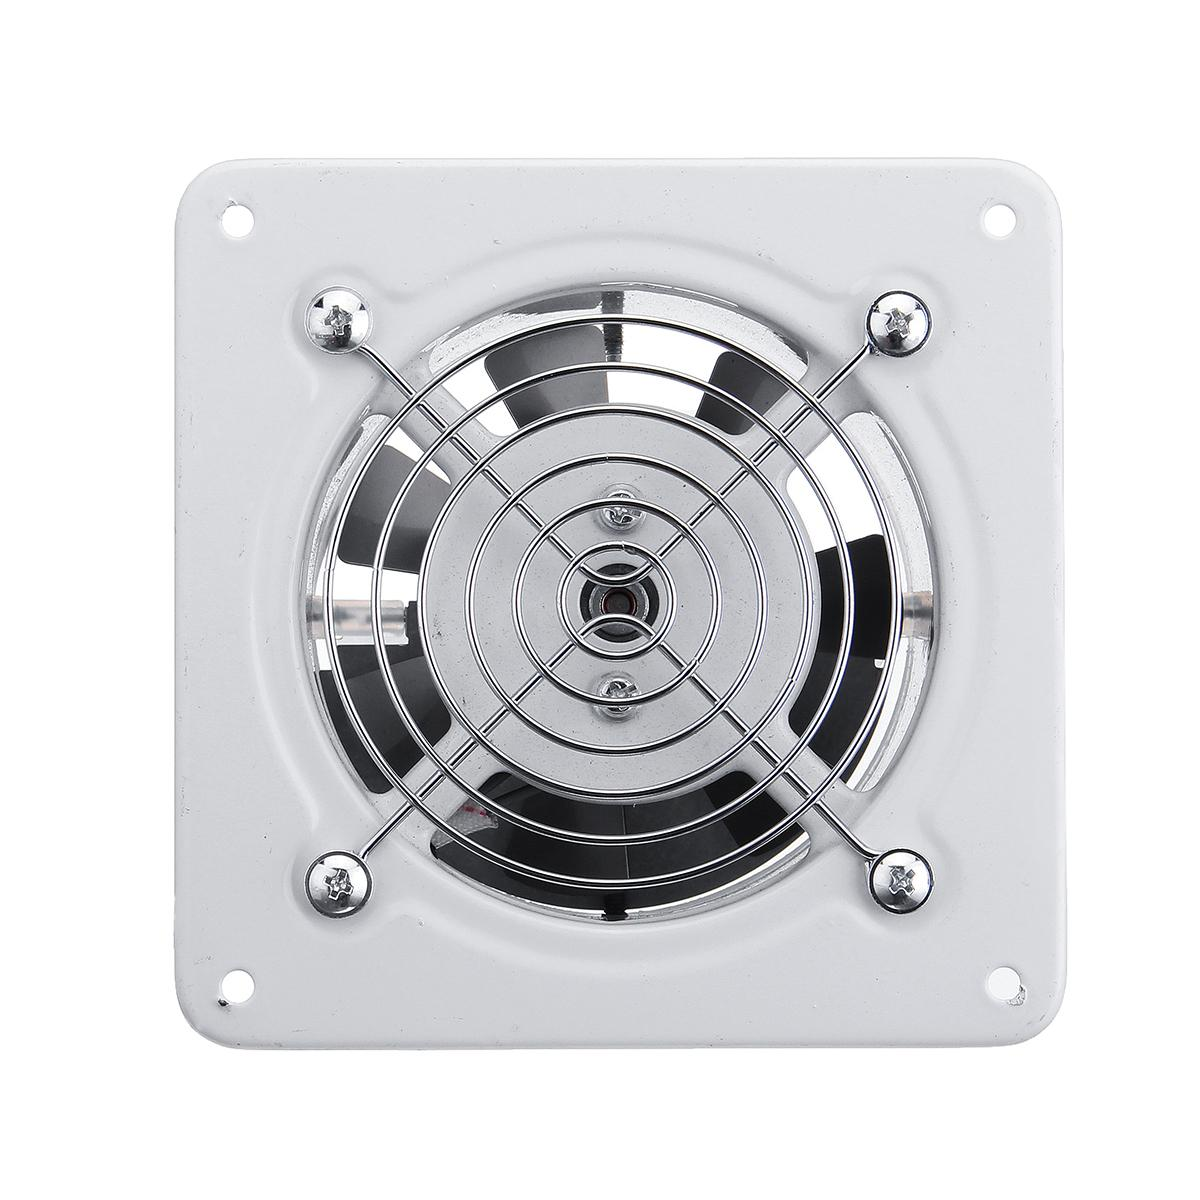 types of kitchen exhaust fans table lighting 2019 4 220v 25w fan window type silent wall extractor air vents bathroom toilet ventilation from jmqj66 26 1 dhgate com